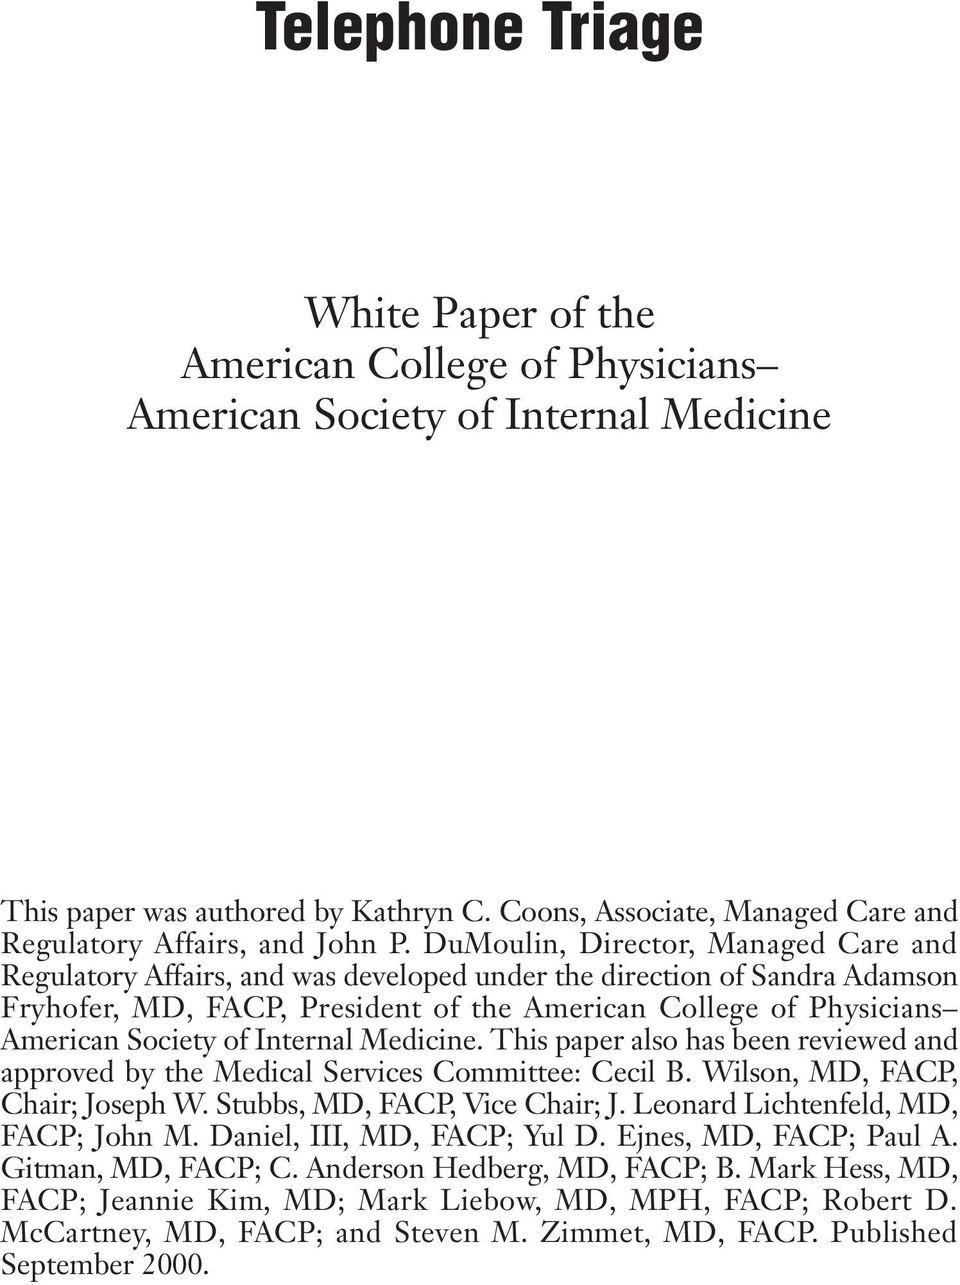 of Internal Medicine. This paper also has been reviewed and approved by the Medical Services Committee: Cecil B. Wilson, MD, FACP, Chair; Joseph W. Stubbs, MD, FACP, Vice Chair; J.